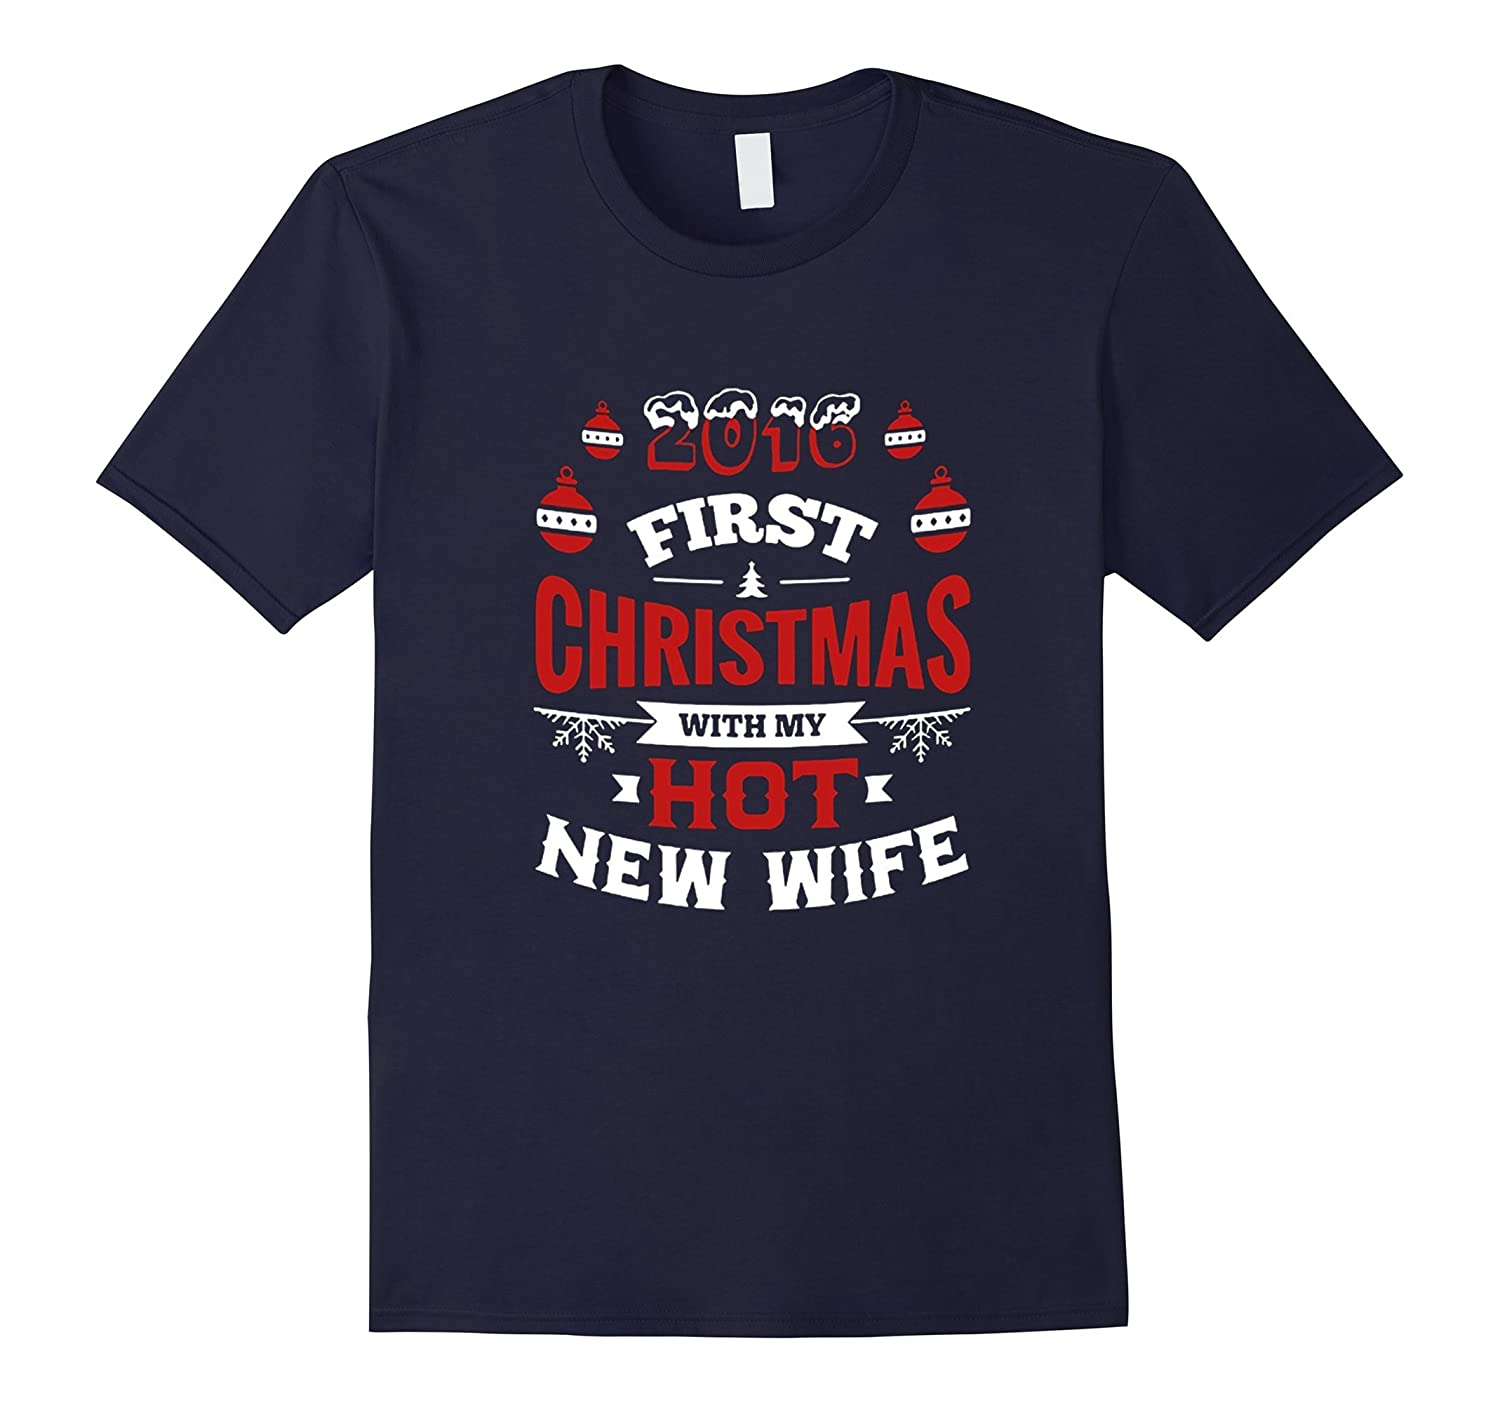 2016 First Christmas With My Hot New Wife T Shirt Funny tee-BN